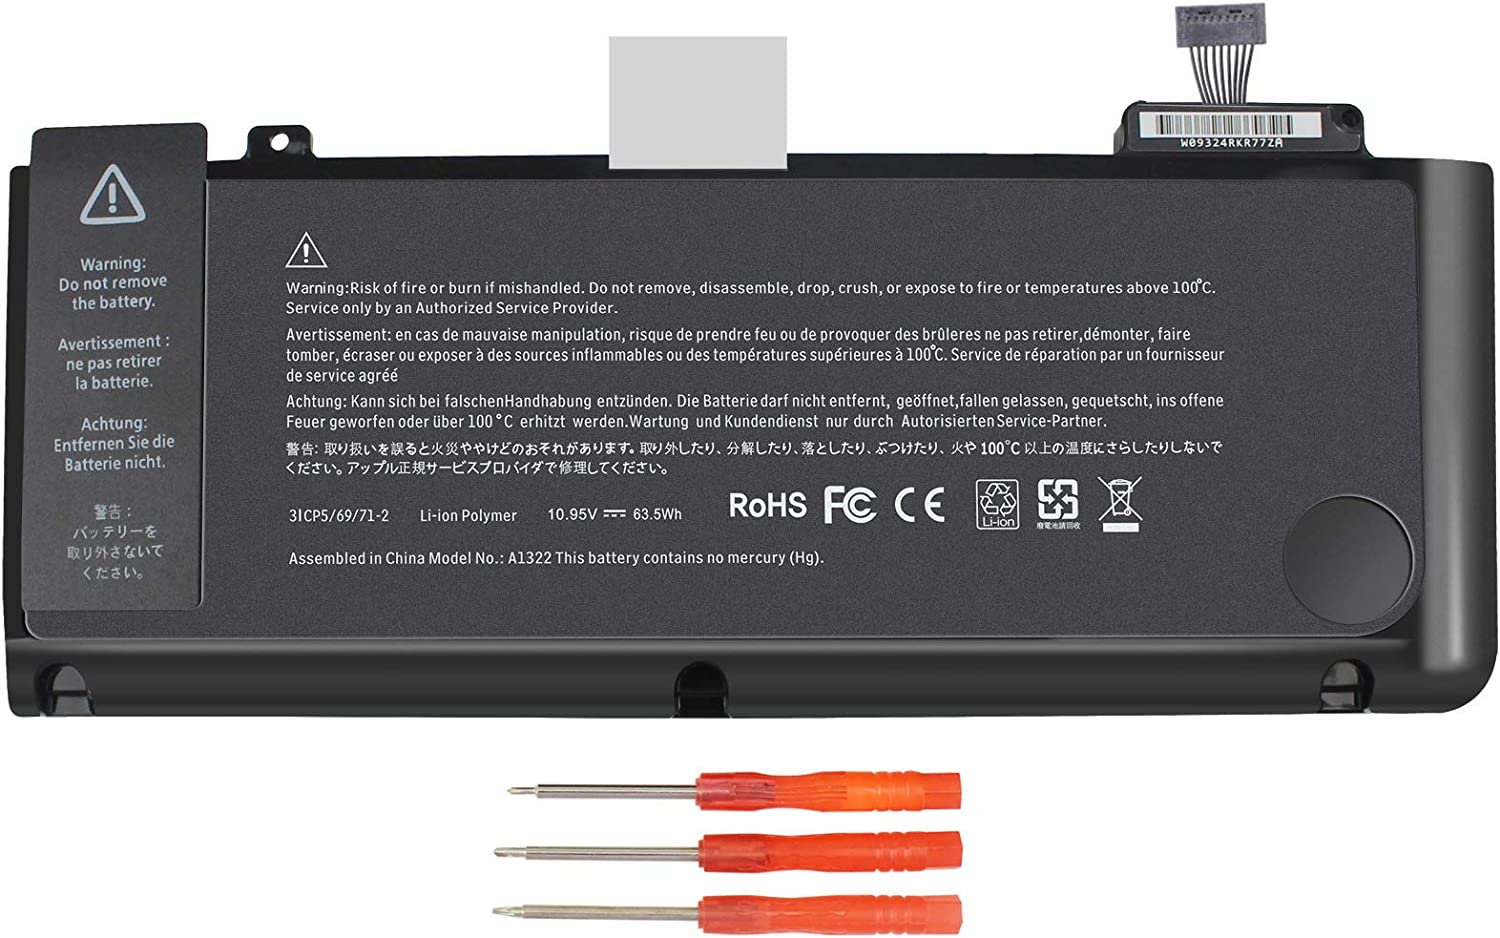 A1321 A1286 Laptop Battery for MacBook Pro 15 Inch Mid 2009 Mid 2010, Replacement for MacBook Pro Battery A1321 A1286 MC371LL/A MC372LL/A MB985 MB986 MC118 77.5WH